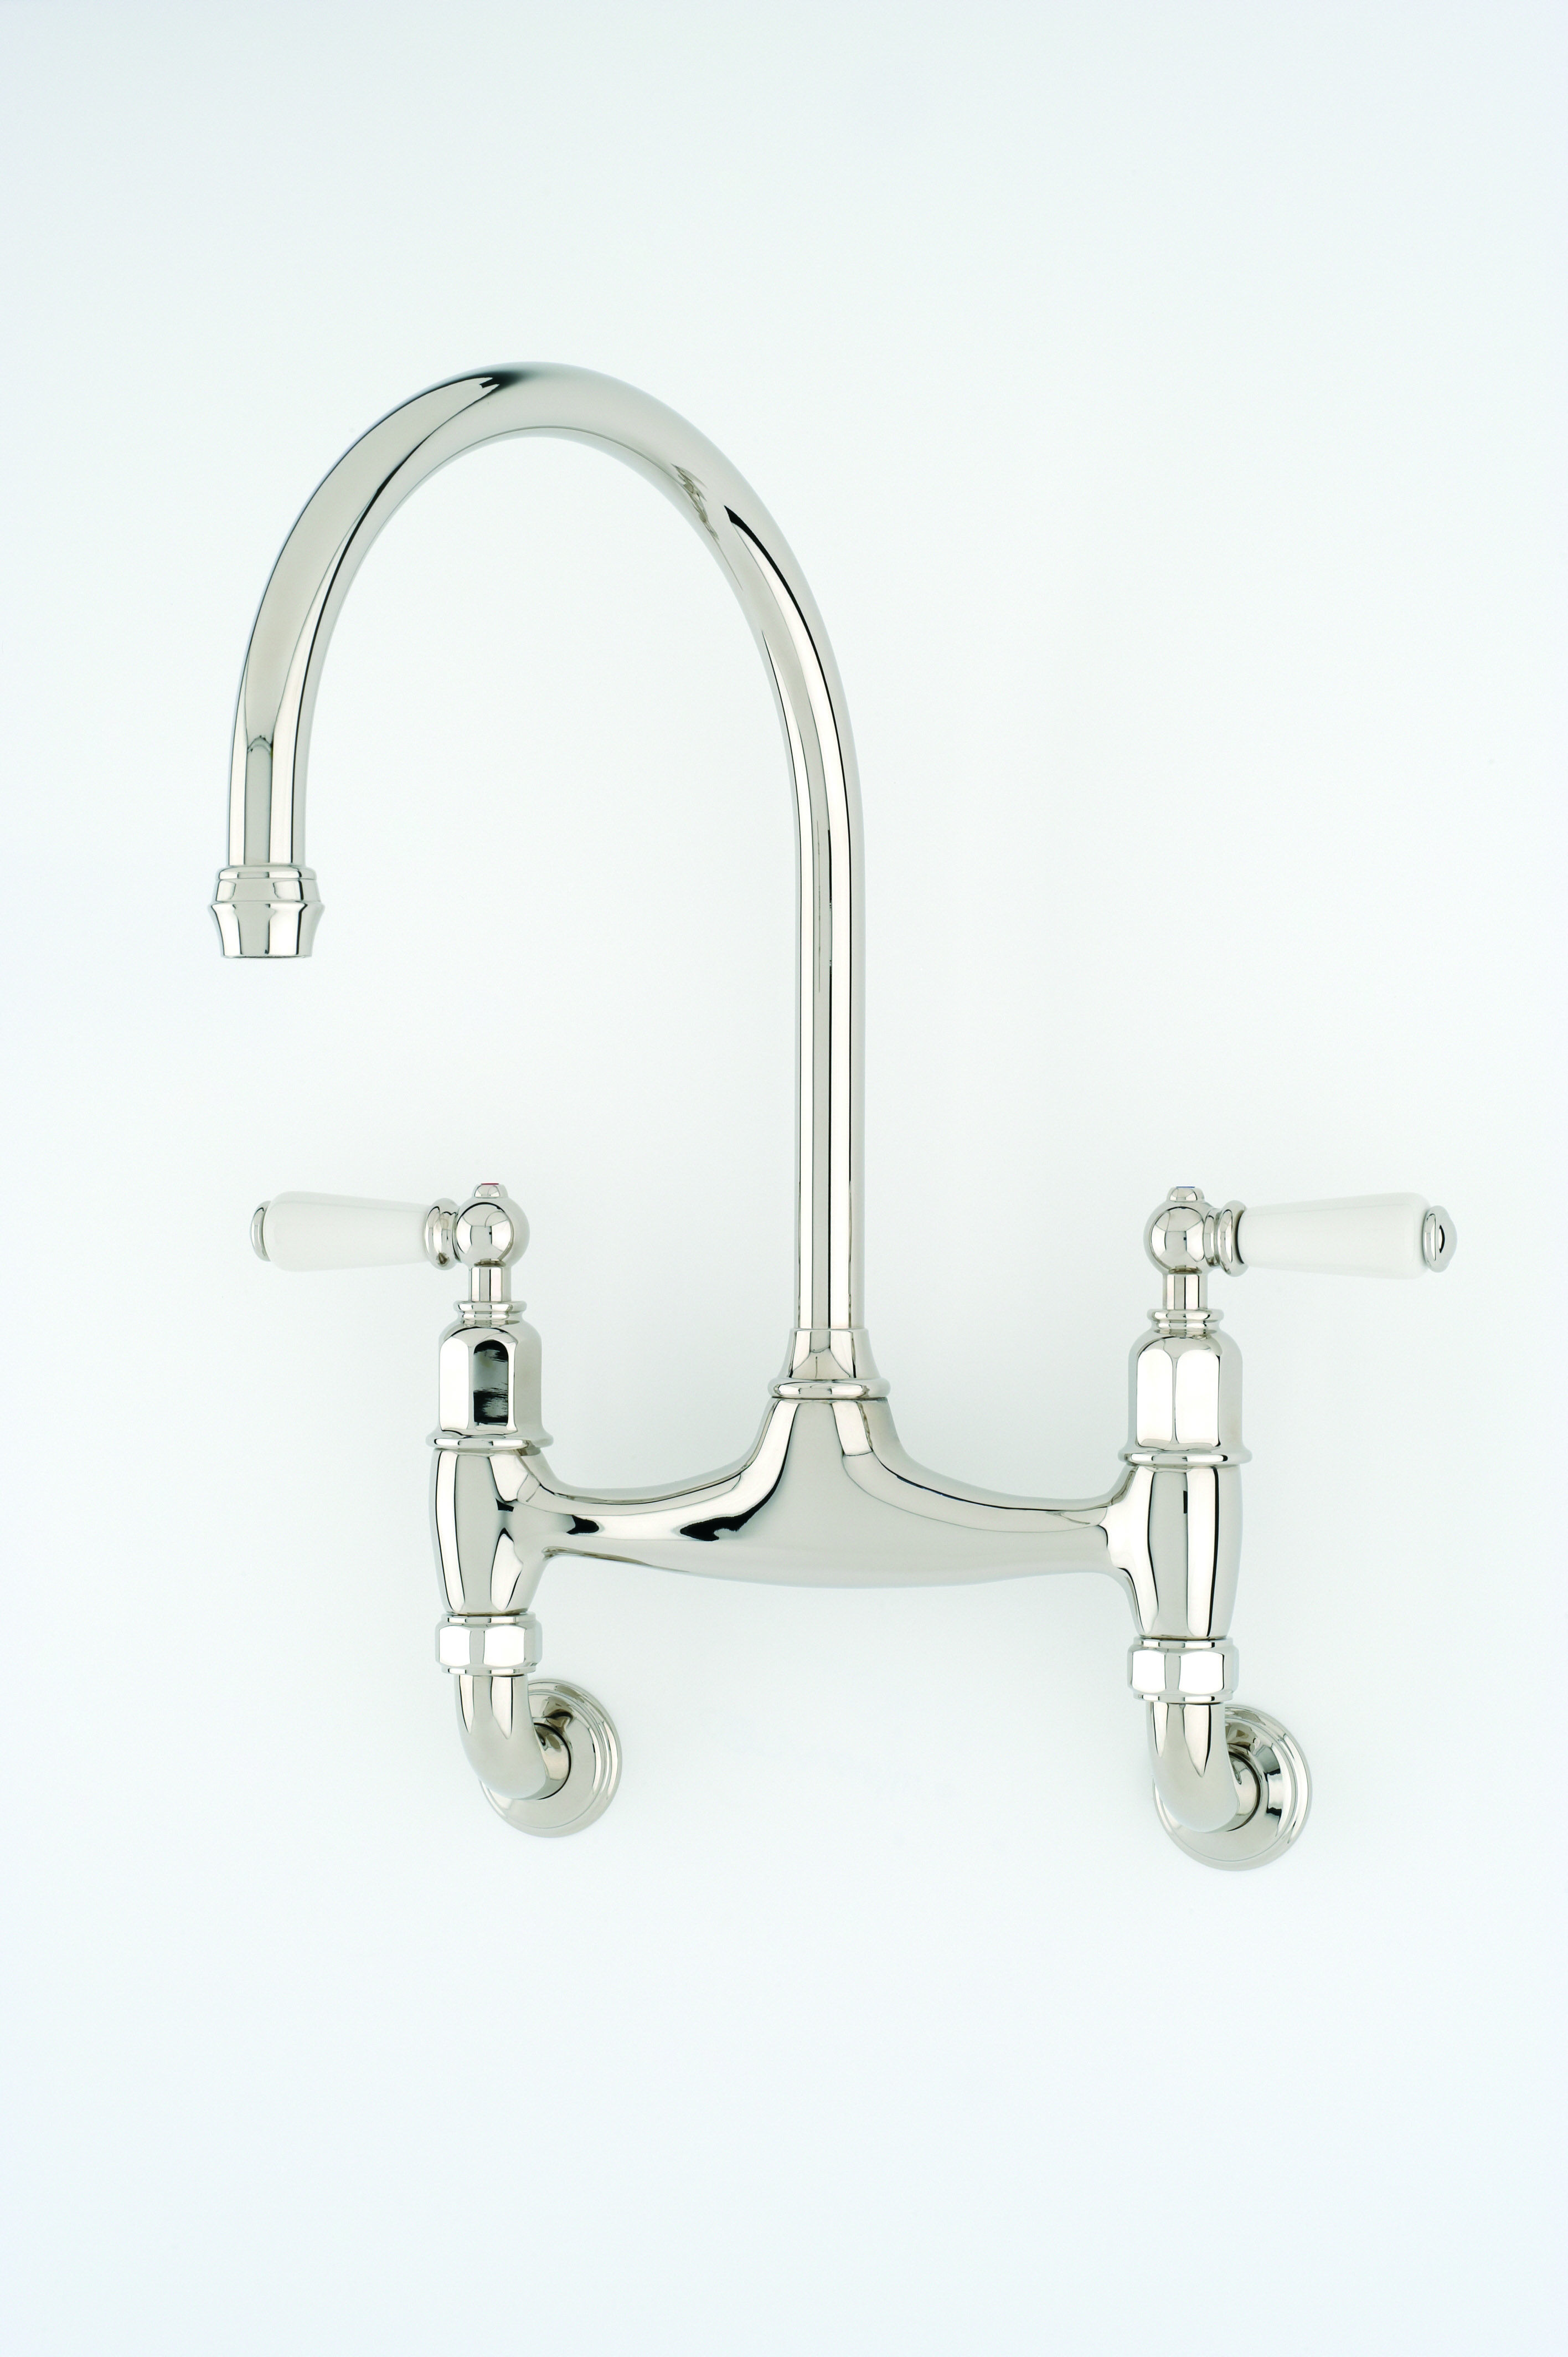 Perrin & Rowe Ionian Wall Mounted Sink Mixer in Nickel with White ...